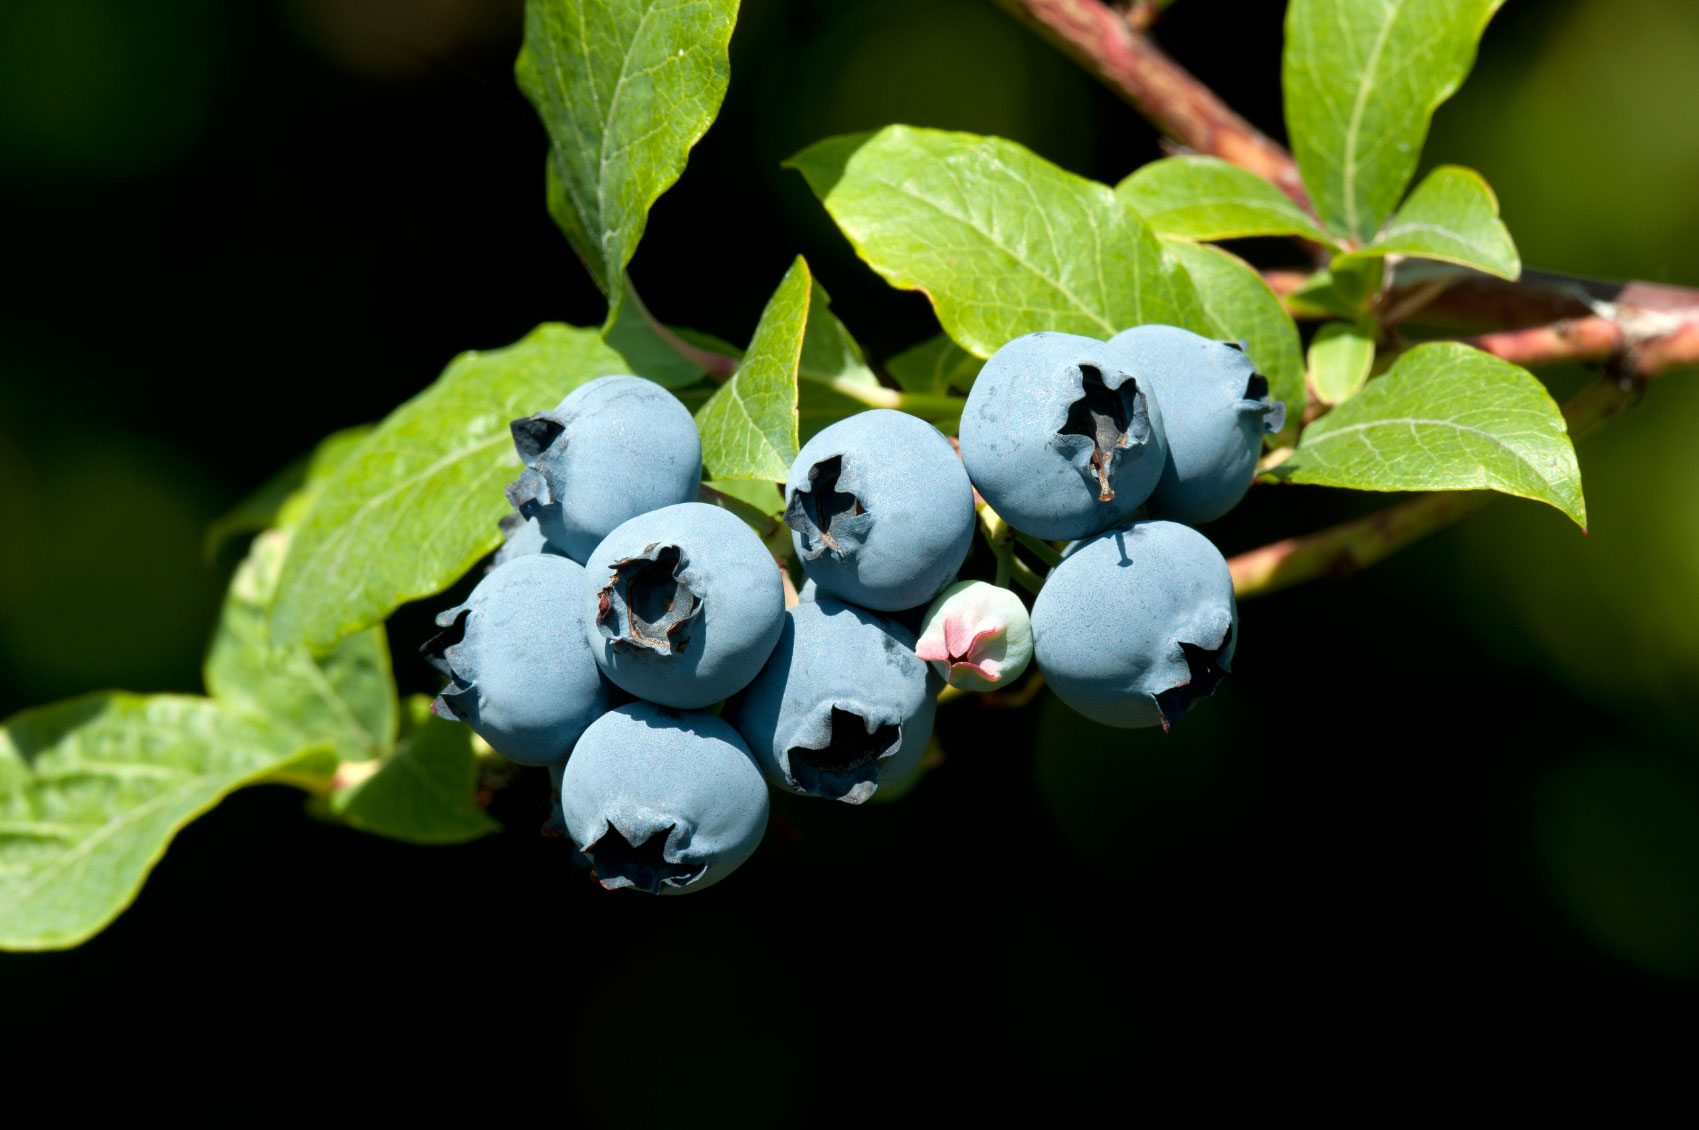 Blueberry Bush Seed Propagation How To Grow Blueberries